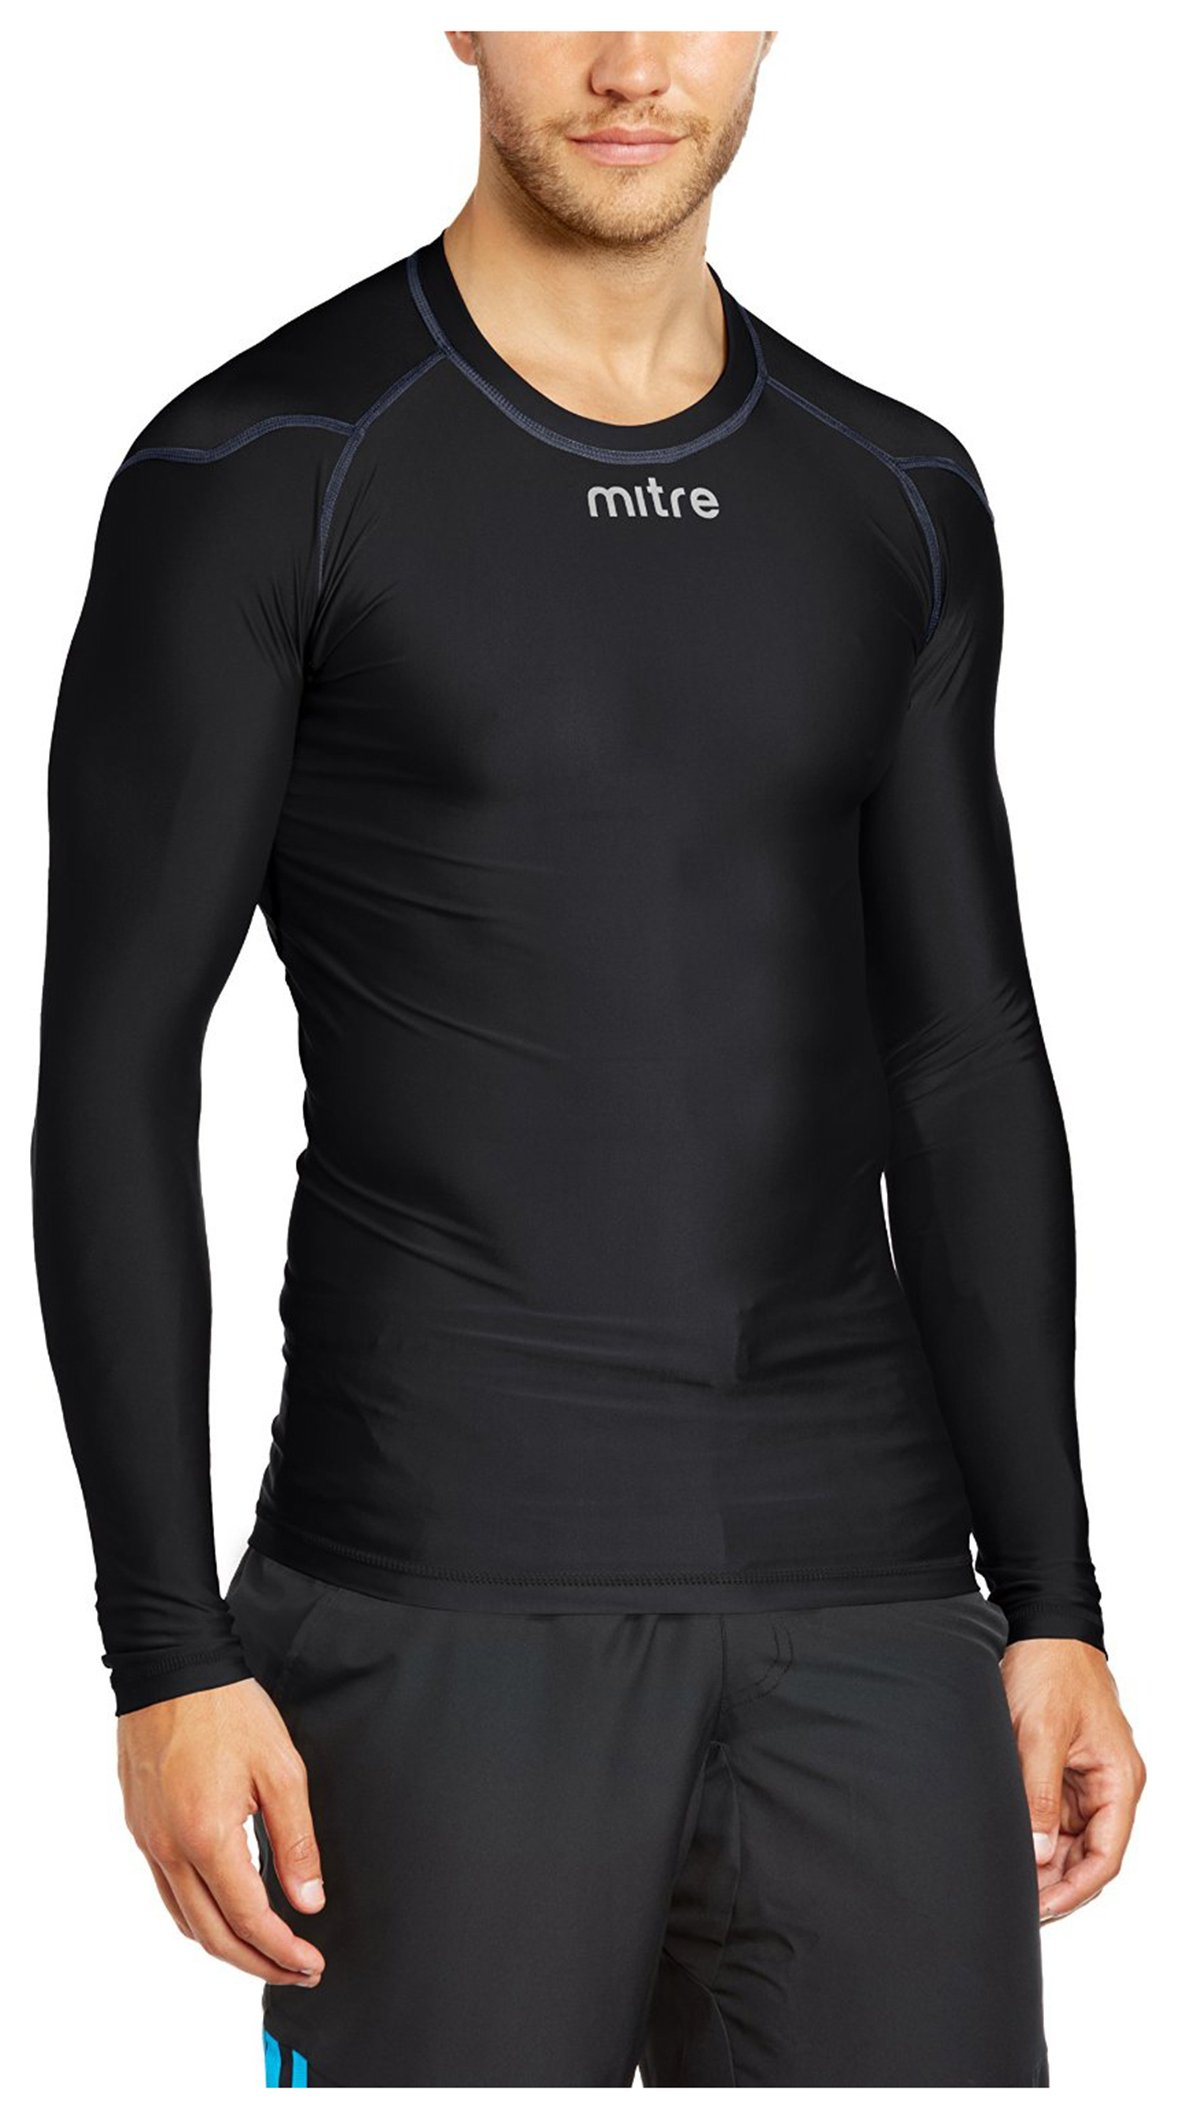 Image of Mitre - Base Layer Jersey Black - Large Youth